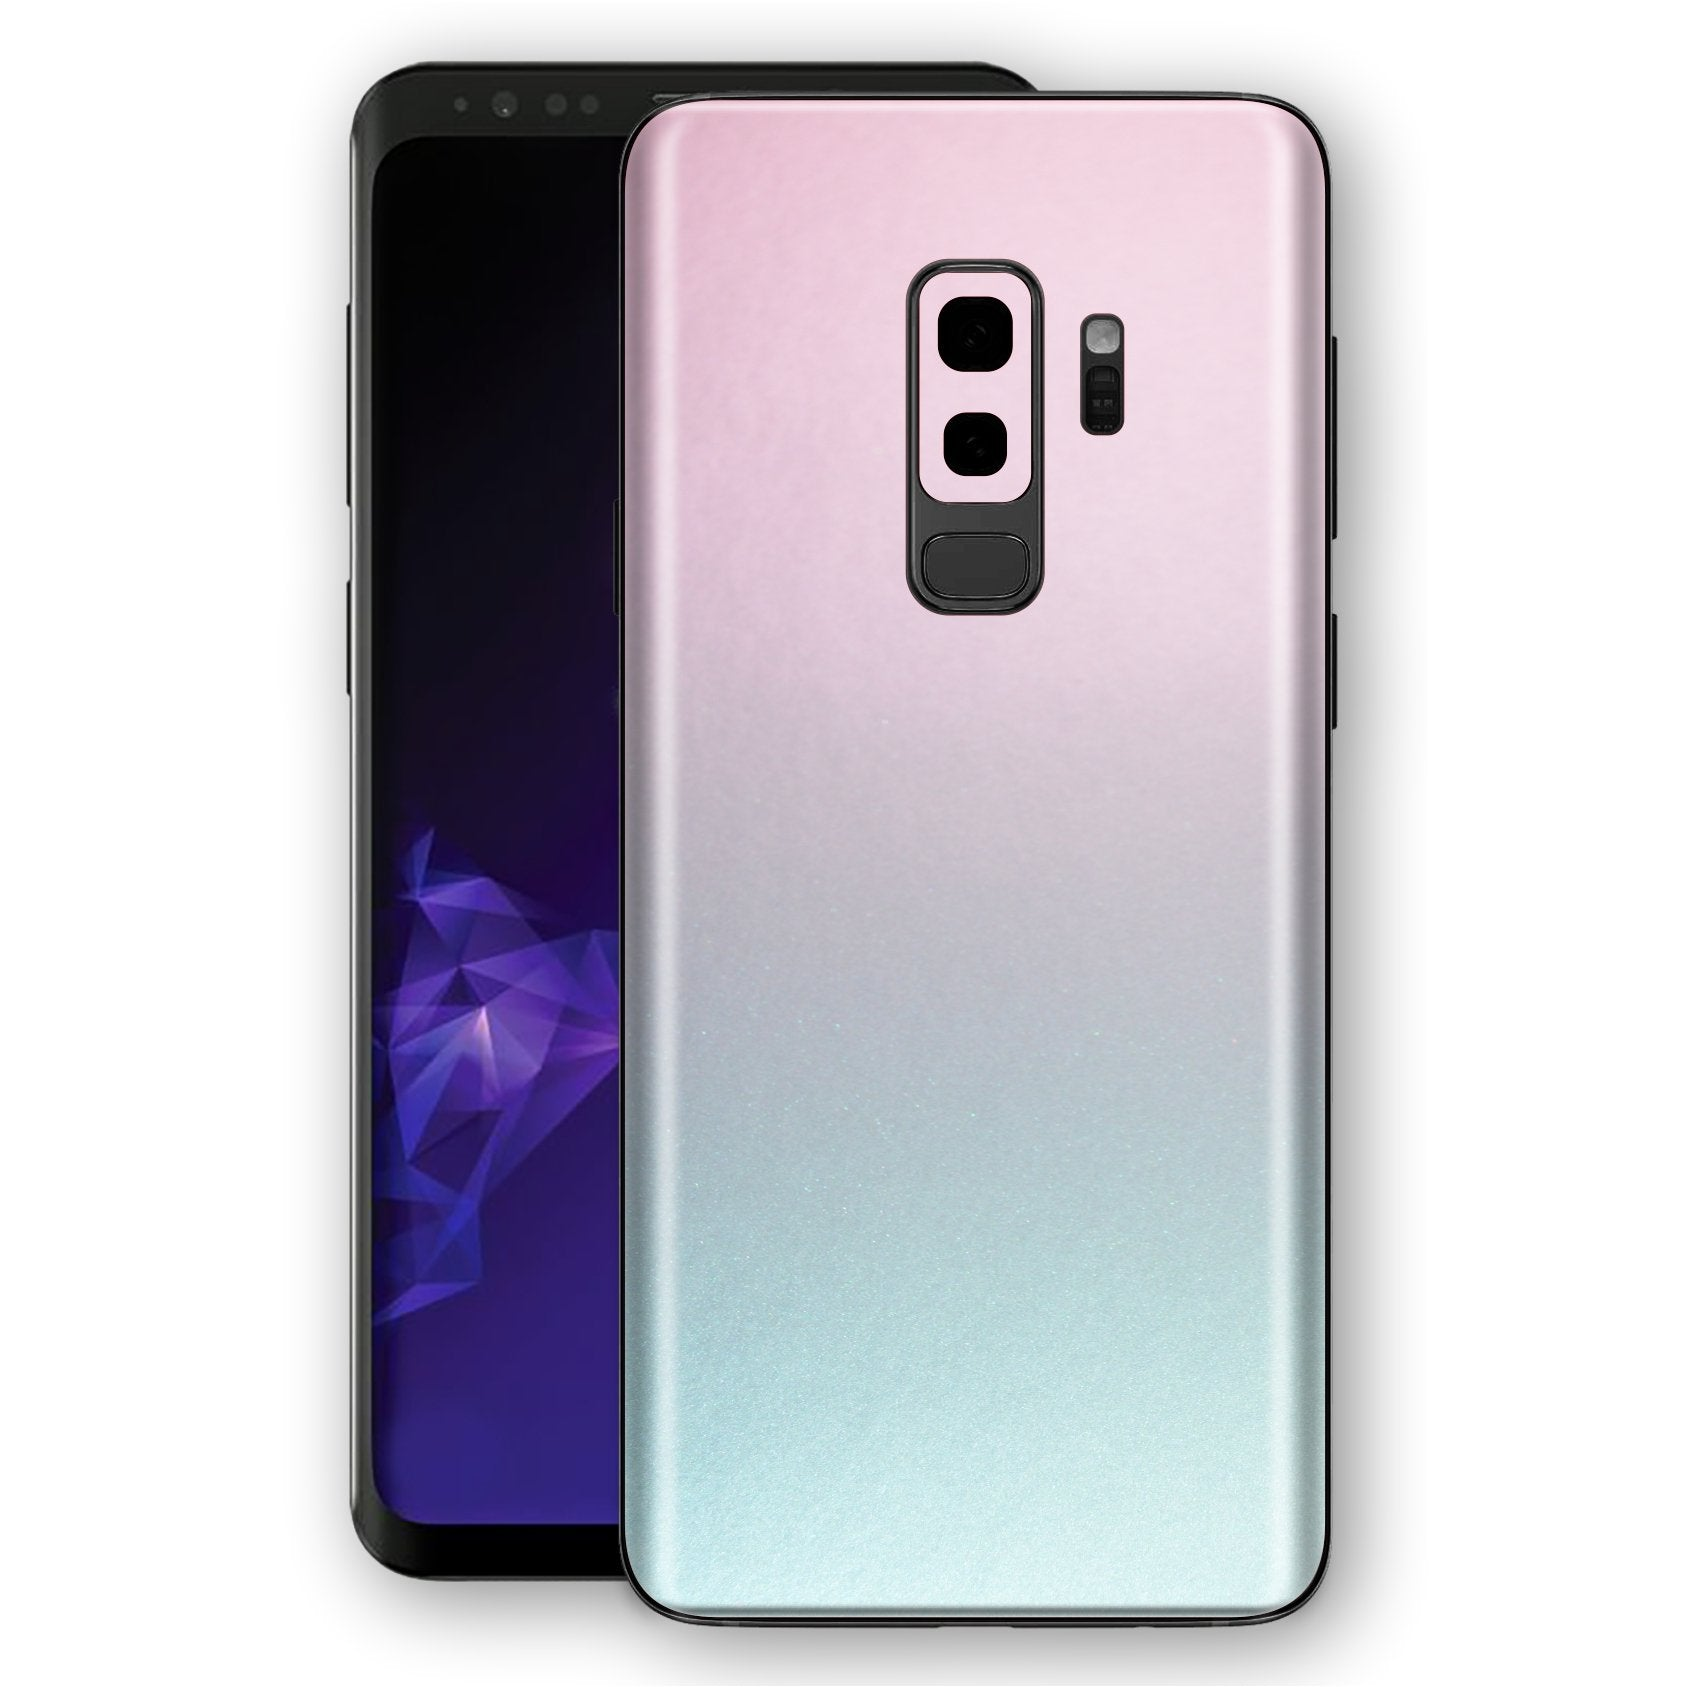 Samsung GALAXY S9 PLUS Chameleon Amethyst Colour Changing Skin Decal Wrap Protector